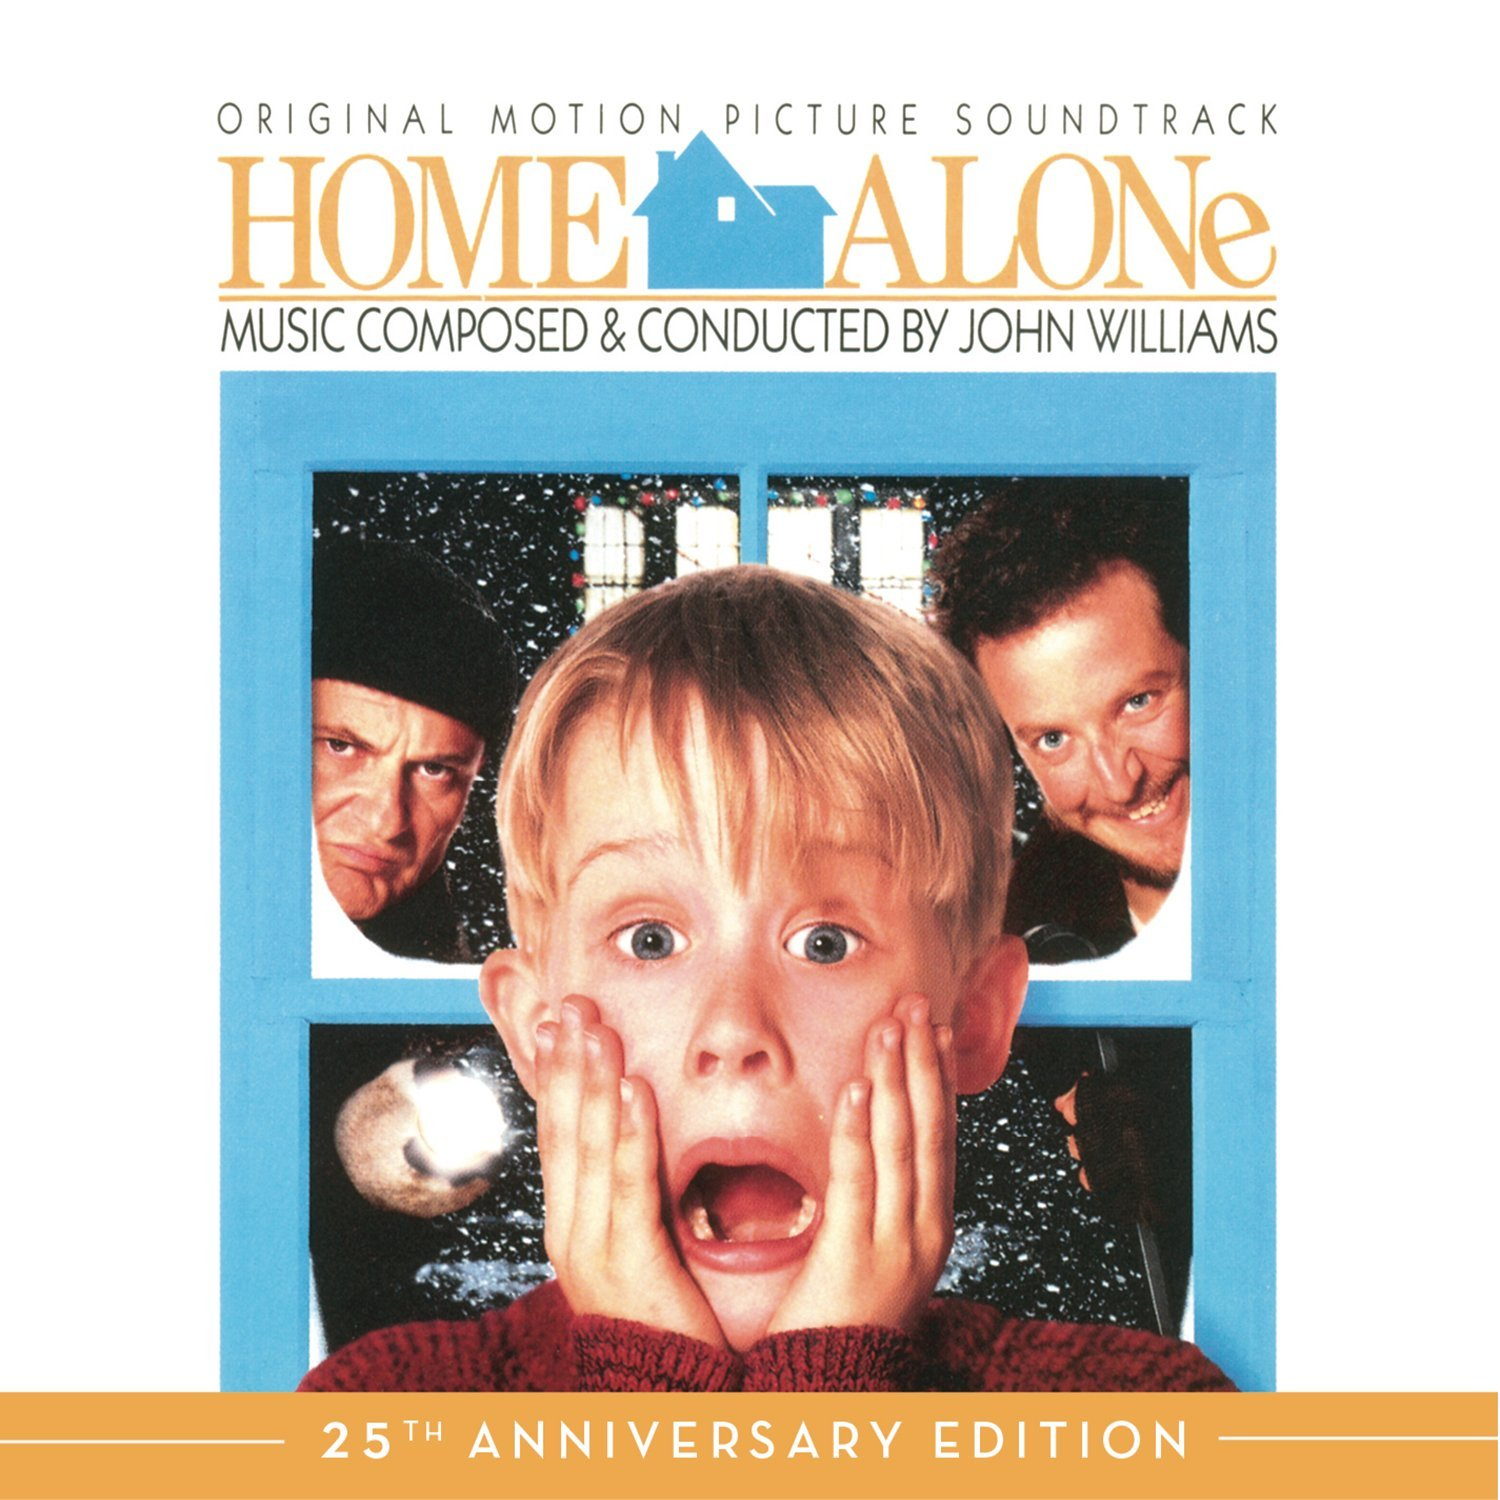 Christmas classic Home Alone 25th Anniversary Edition of the soundtrack composed by John Williams Out Now